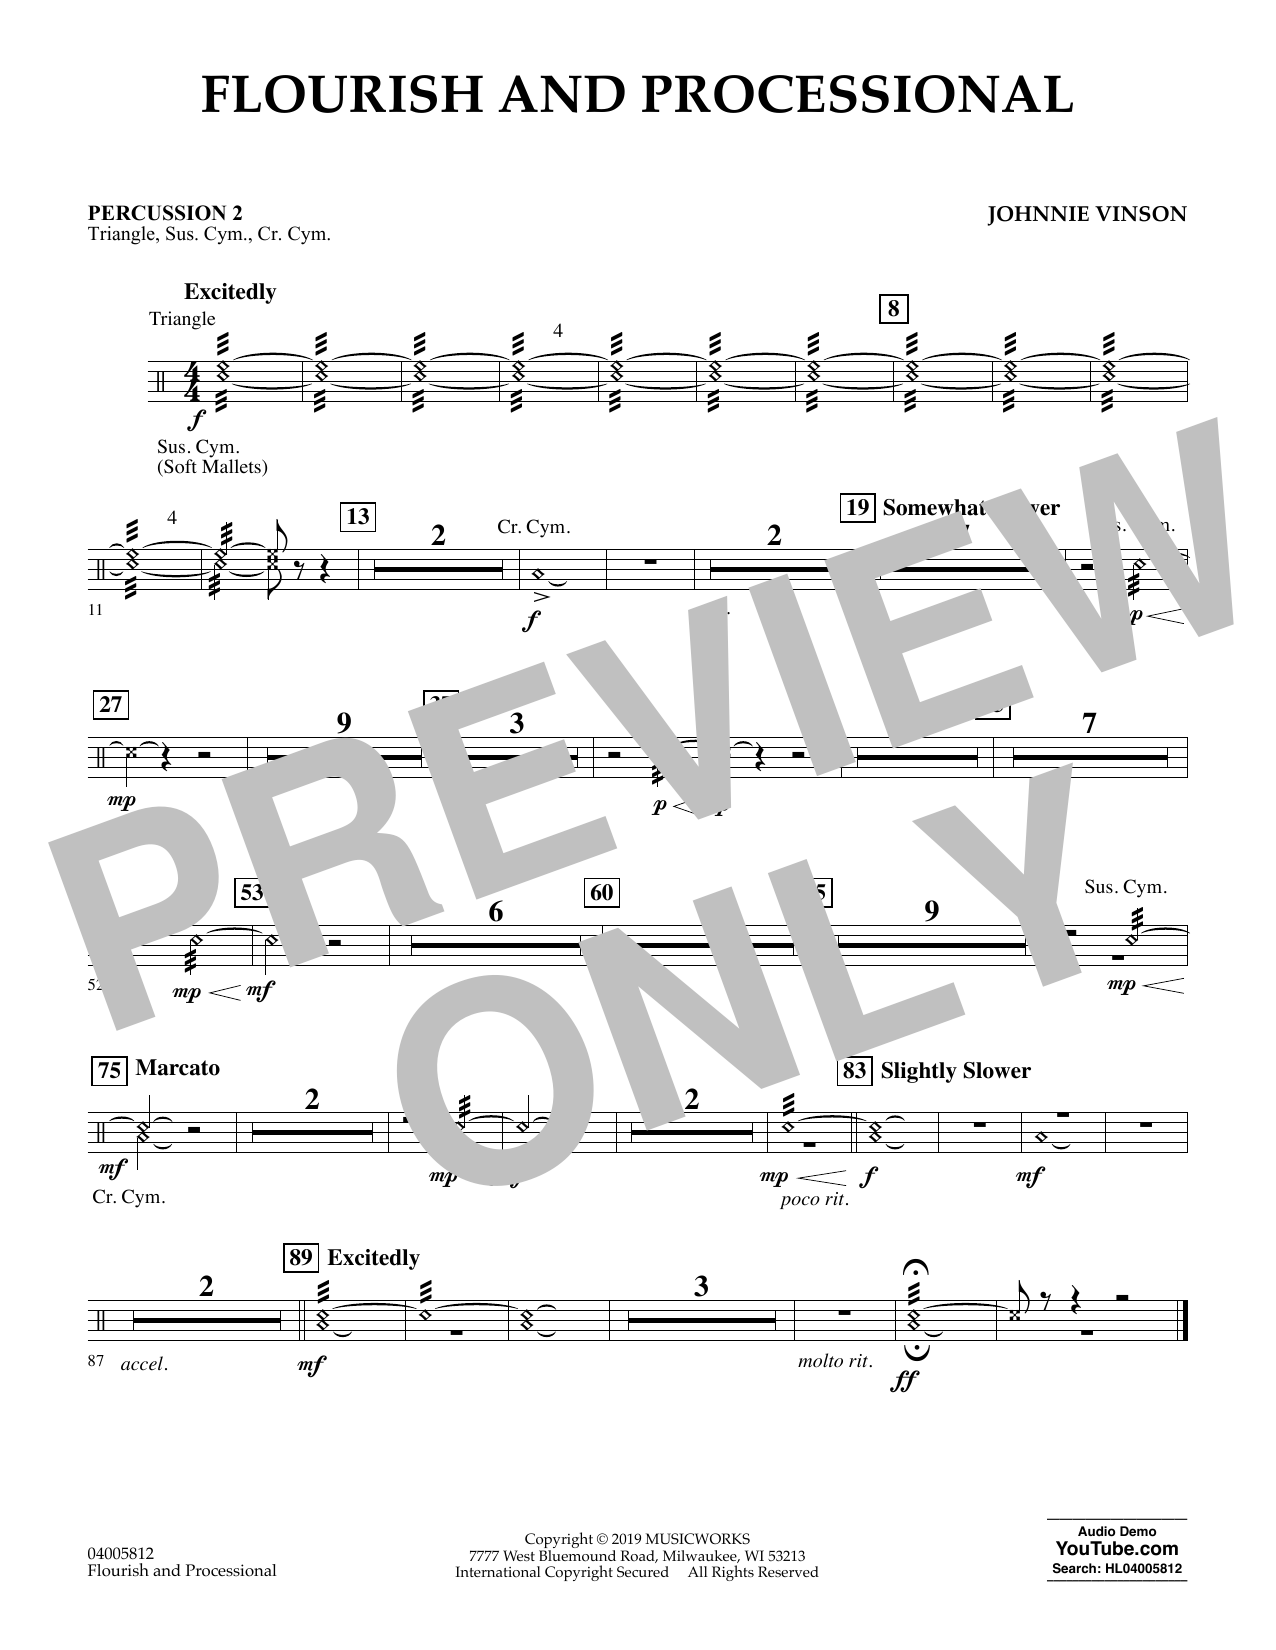 Johnnie Vinson Flourish and Processional - Percussion 2 sheet music preview music notes and score for Concert Band including 1 page(s)